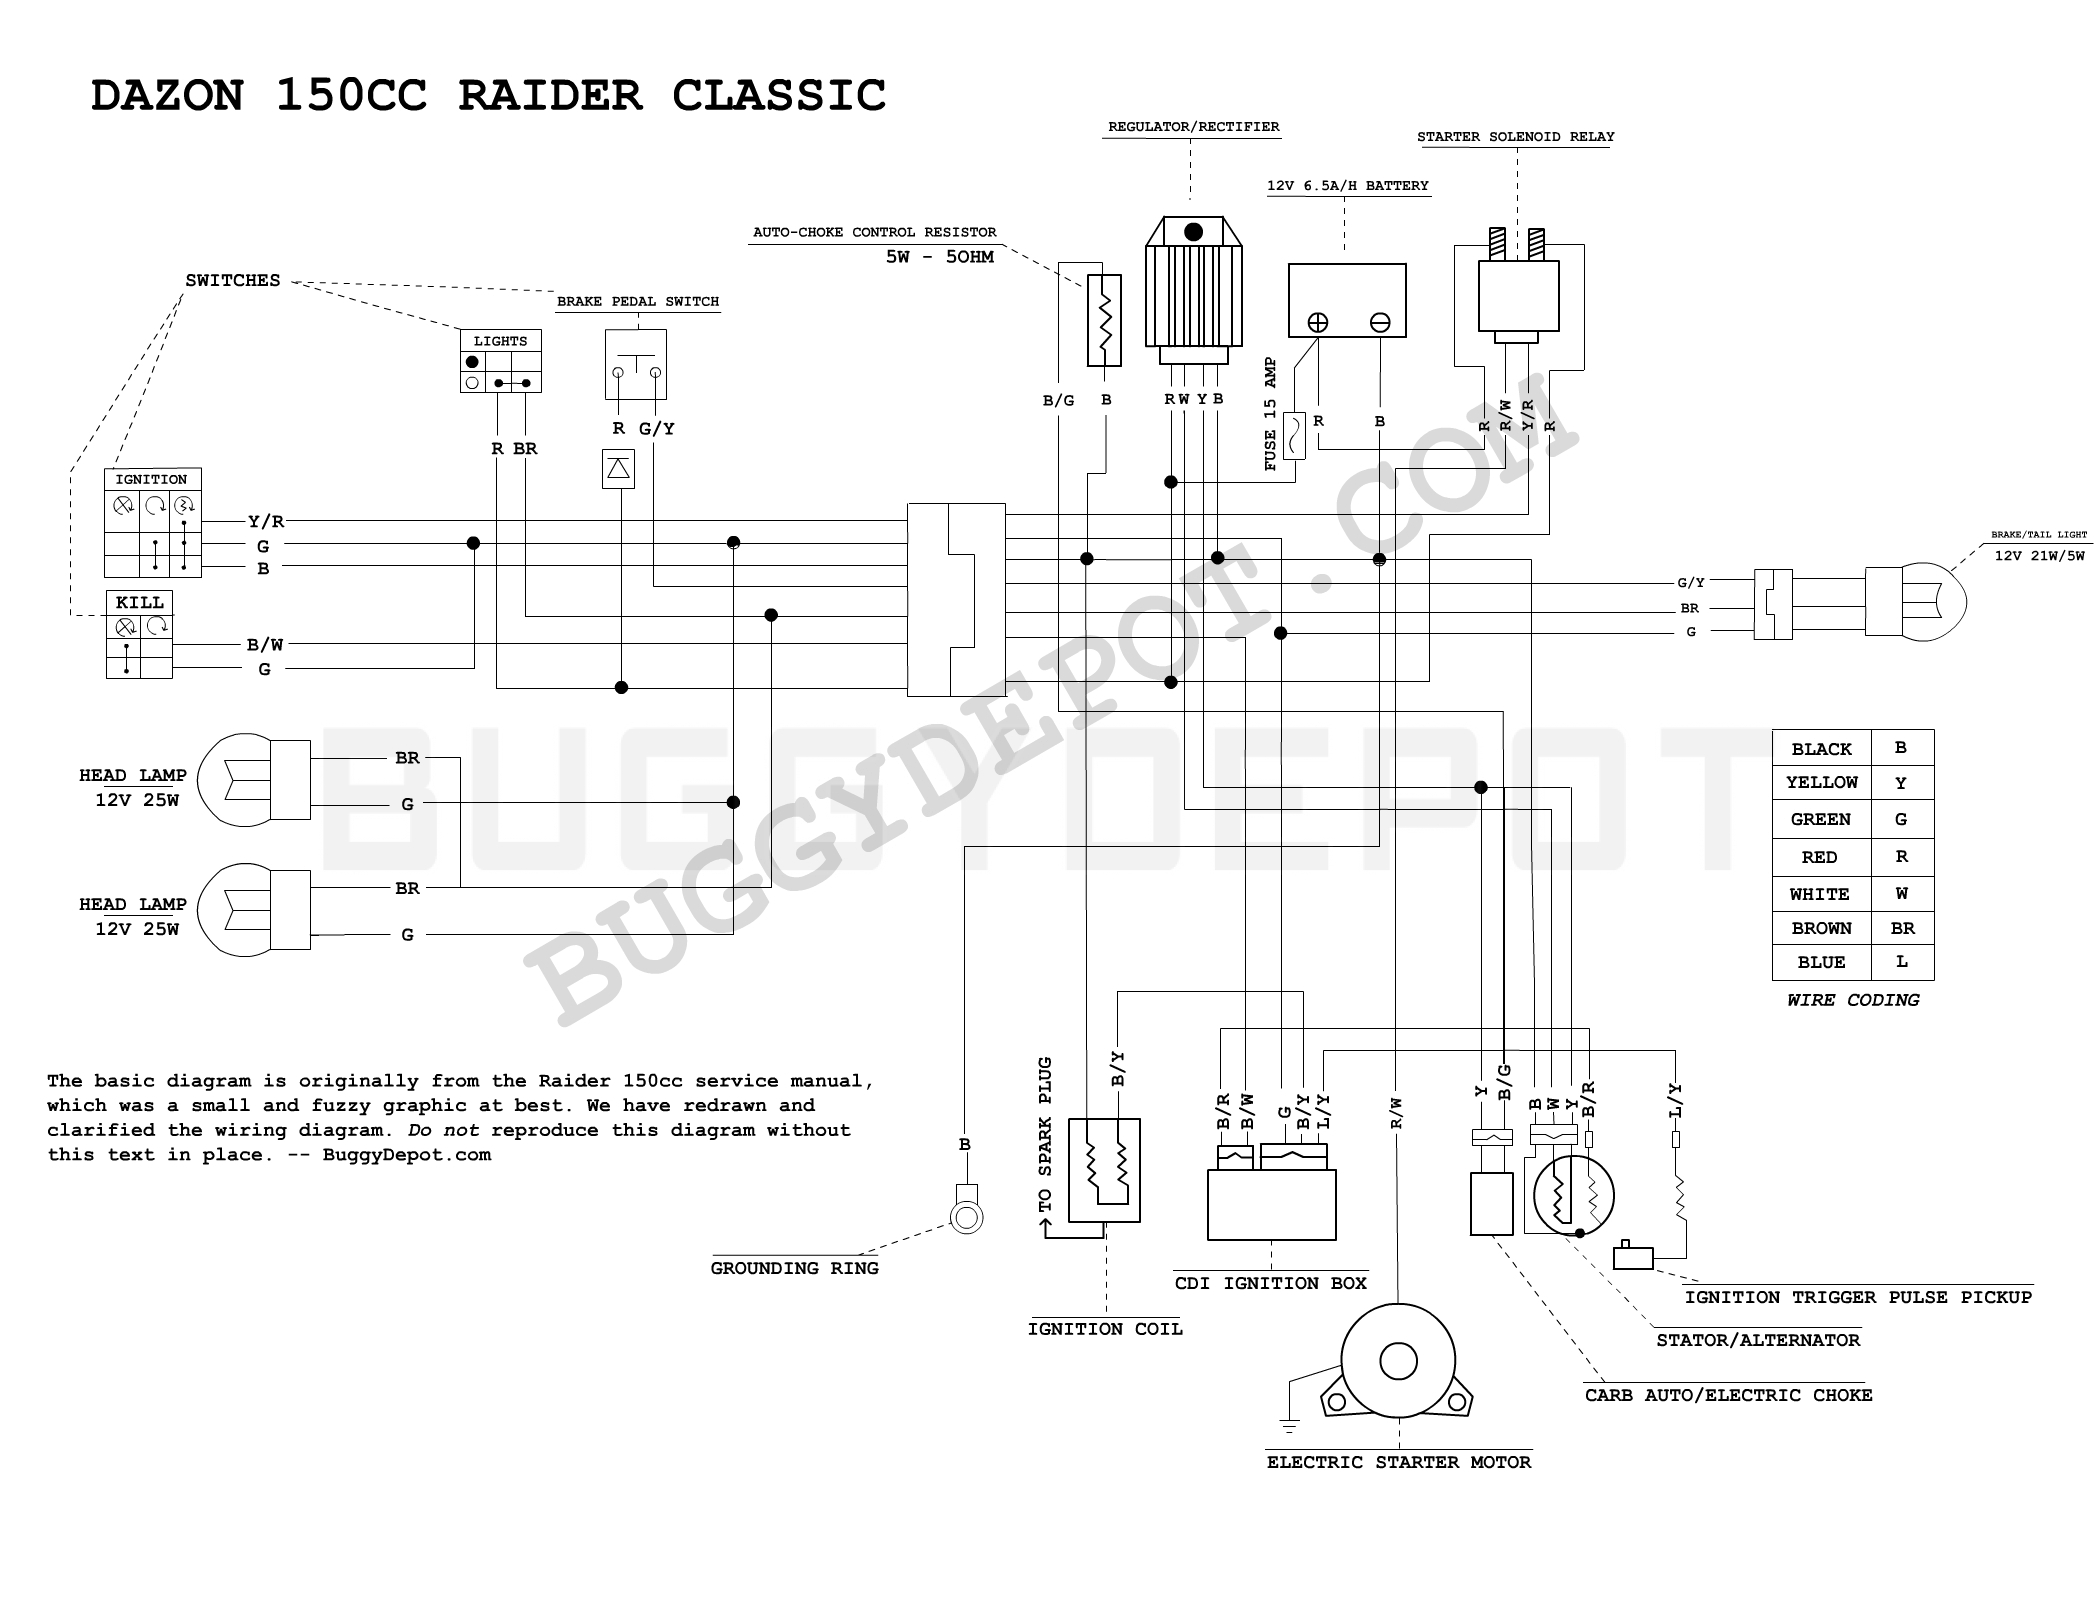 article_33_1278205207 dazon raider classic wiring diagram buggy depot technical center Manco Talon Problems at bakdesigns.co